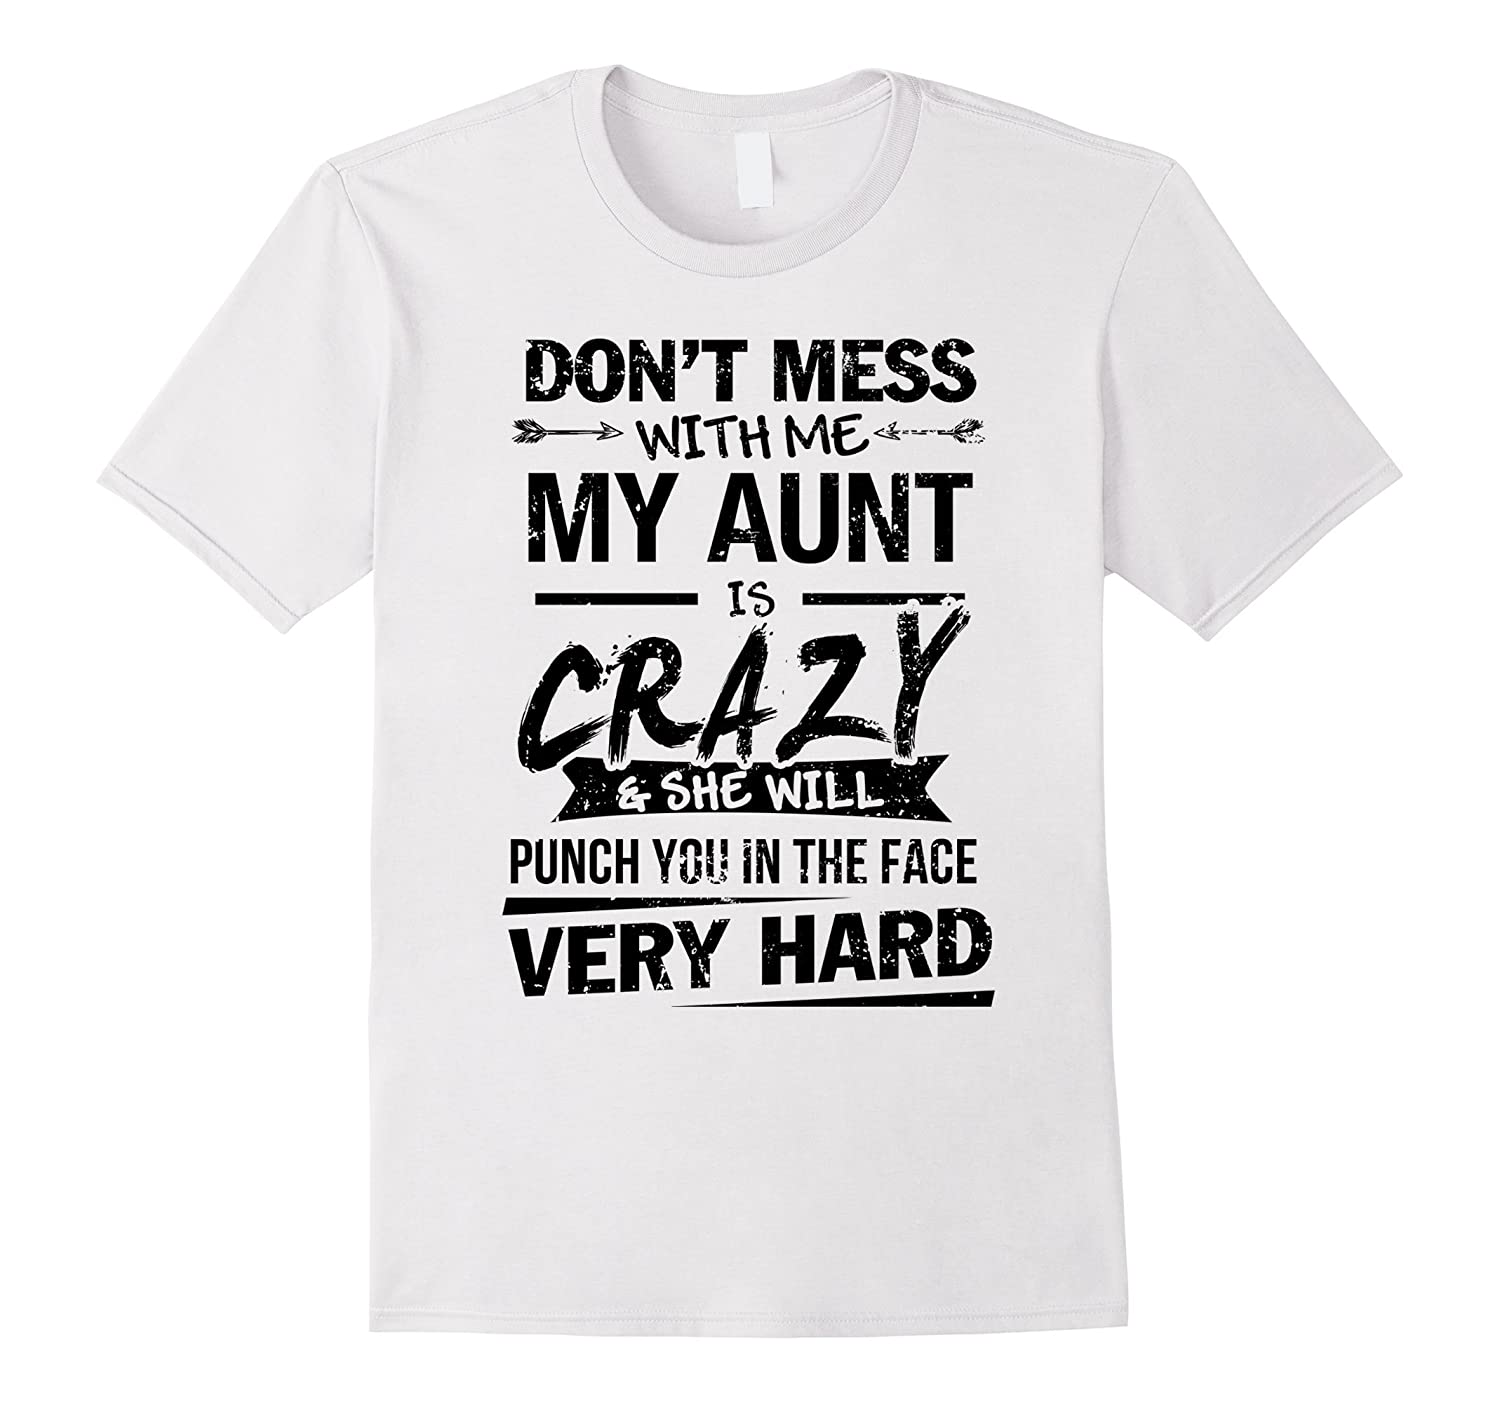 257f0df88 DON'T MESS WITH ME MY AUNT IS CRAZY T SHIRT-ANZ ⋆ Anztshirt